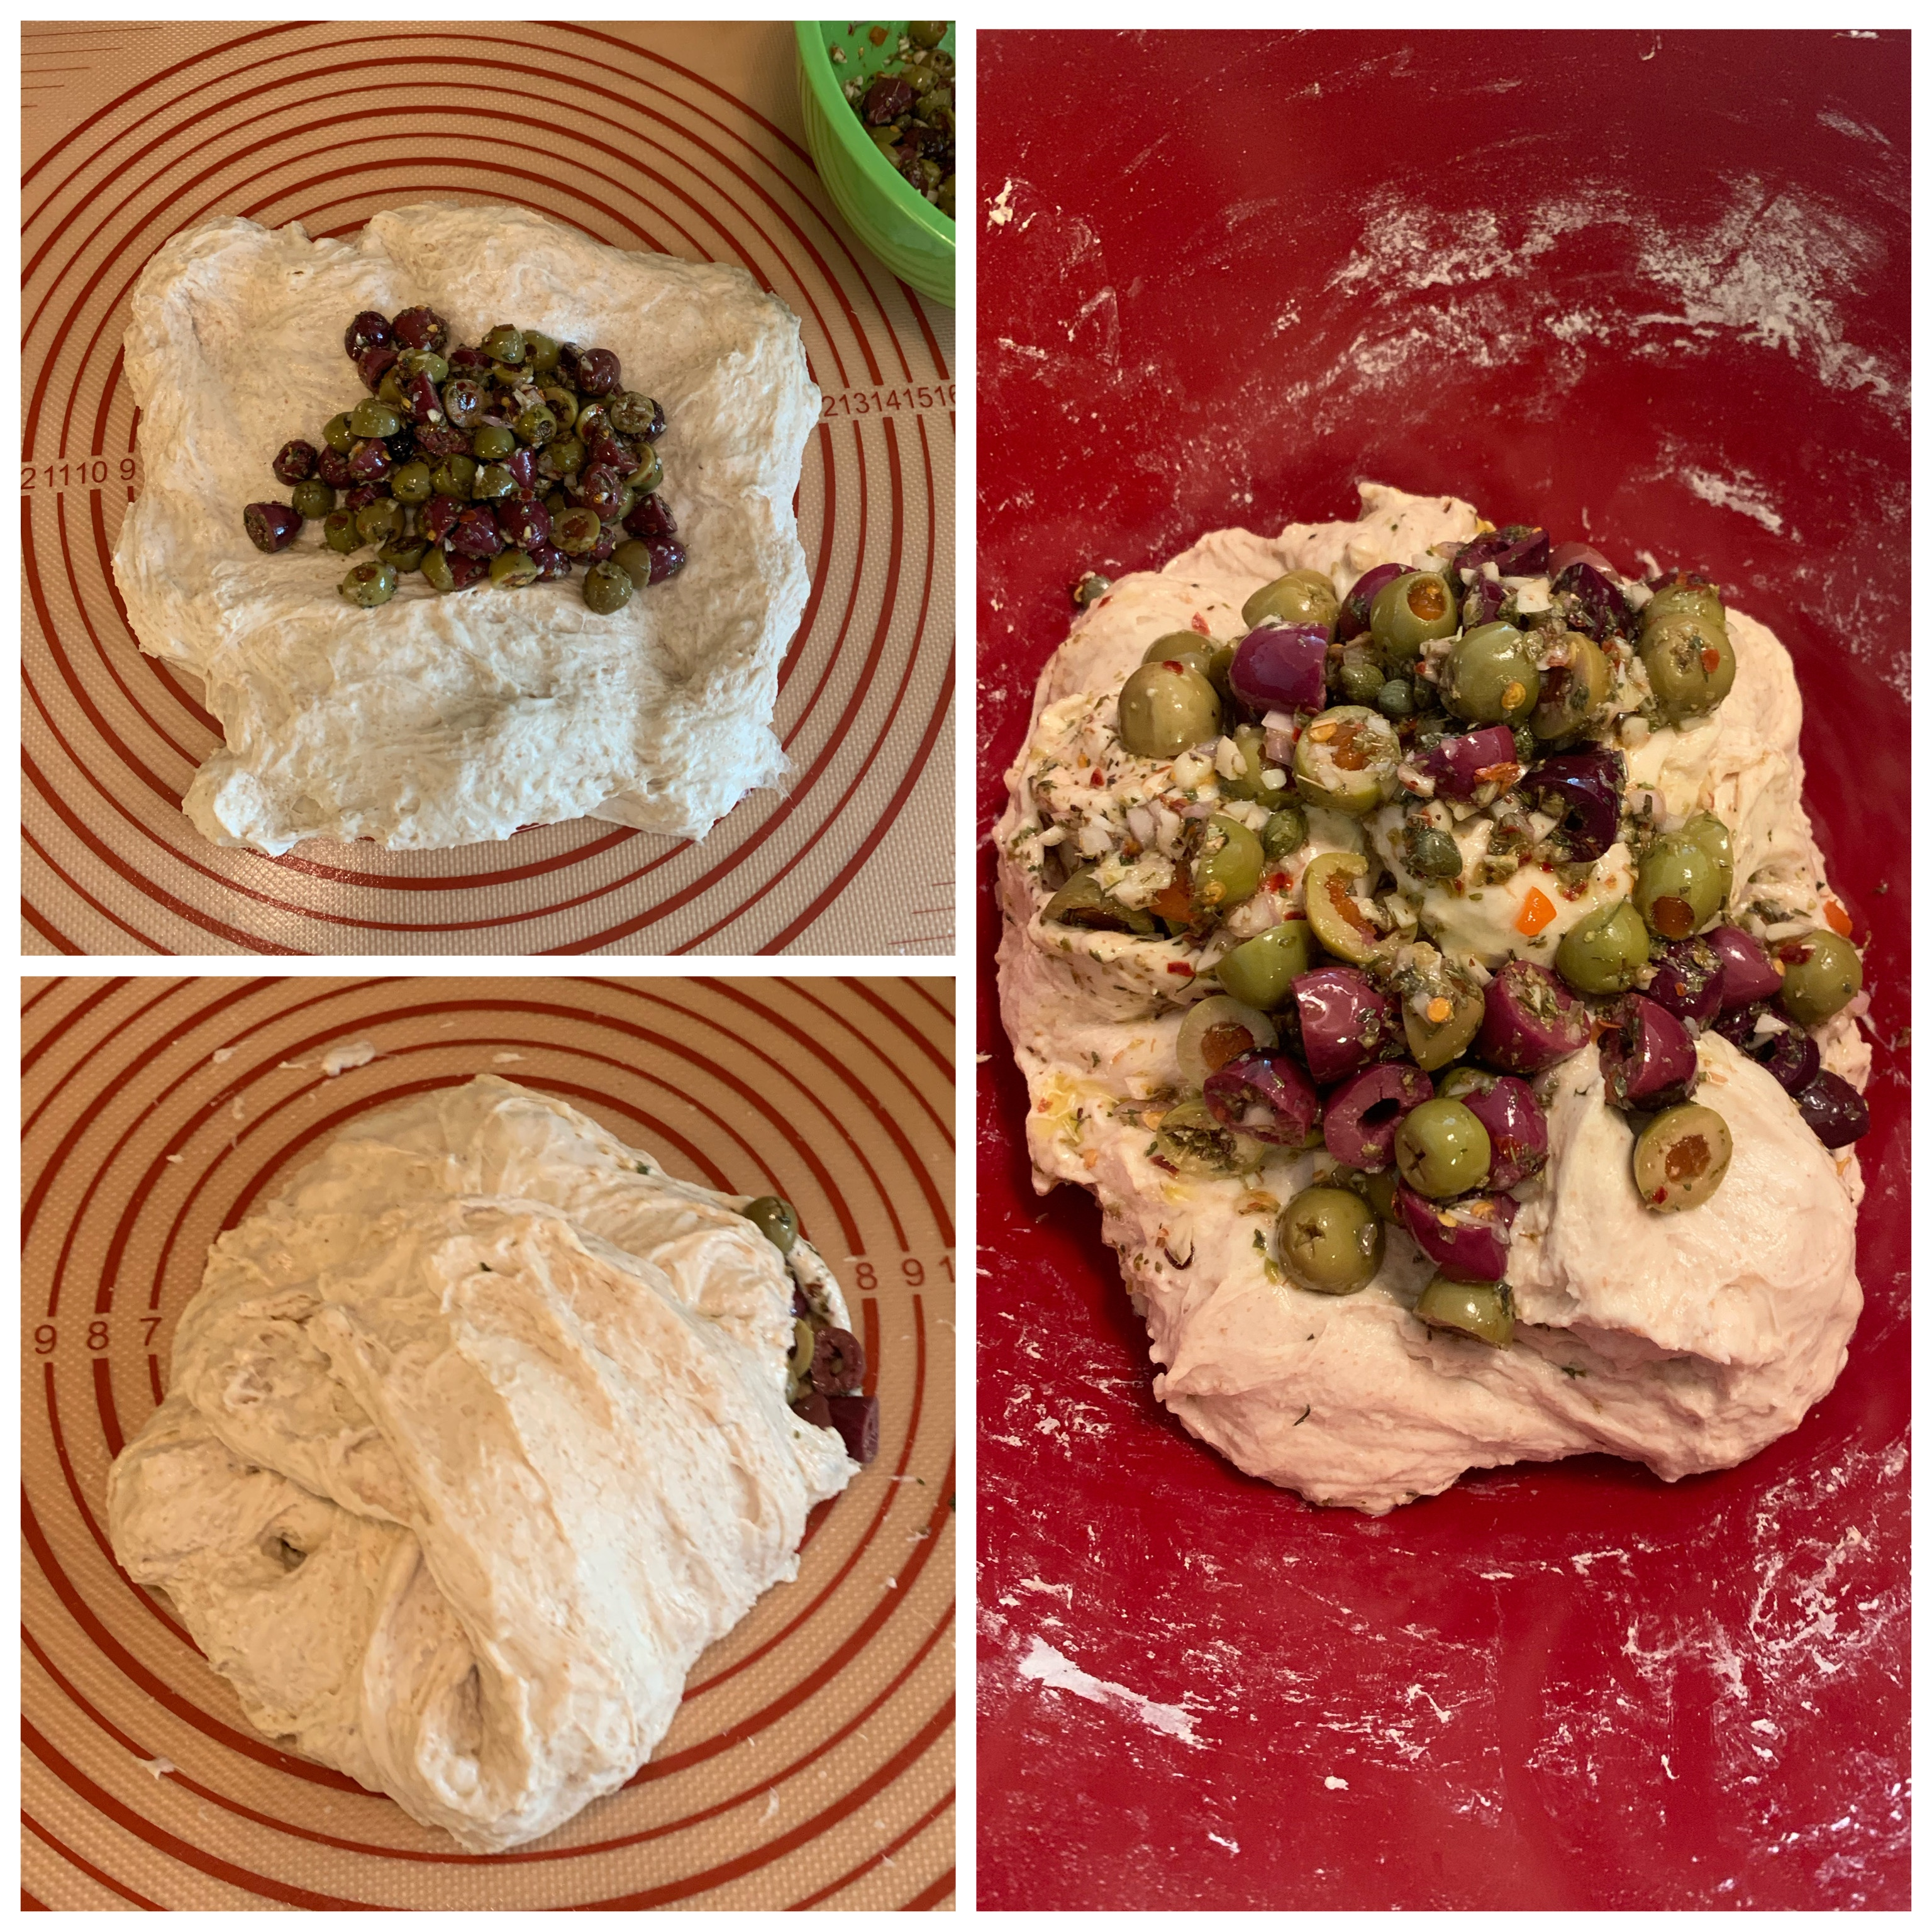 Three images in one block. Top left is dough flattened out with olive salad on top. Bottom left is the same dough folded over the salad. Right is the worked dough with excess olive salad piled on top.